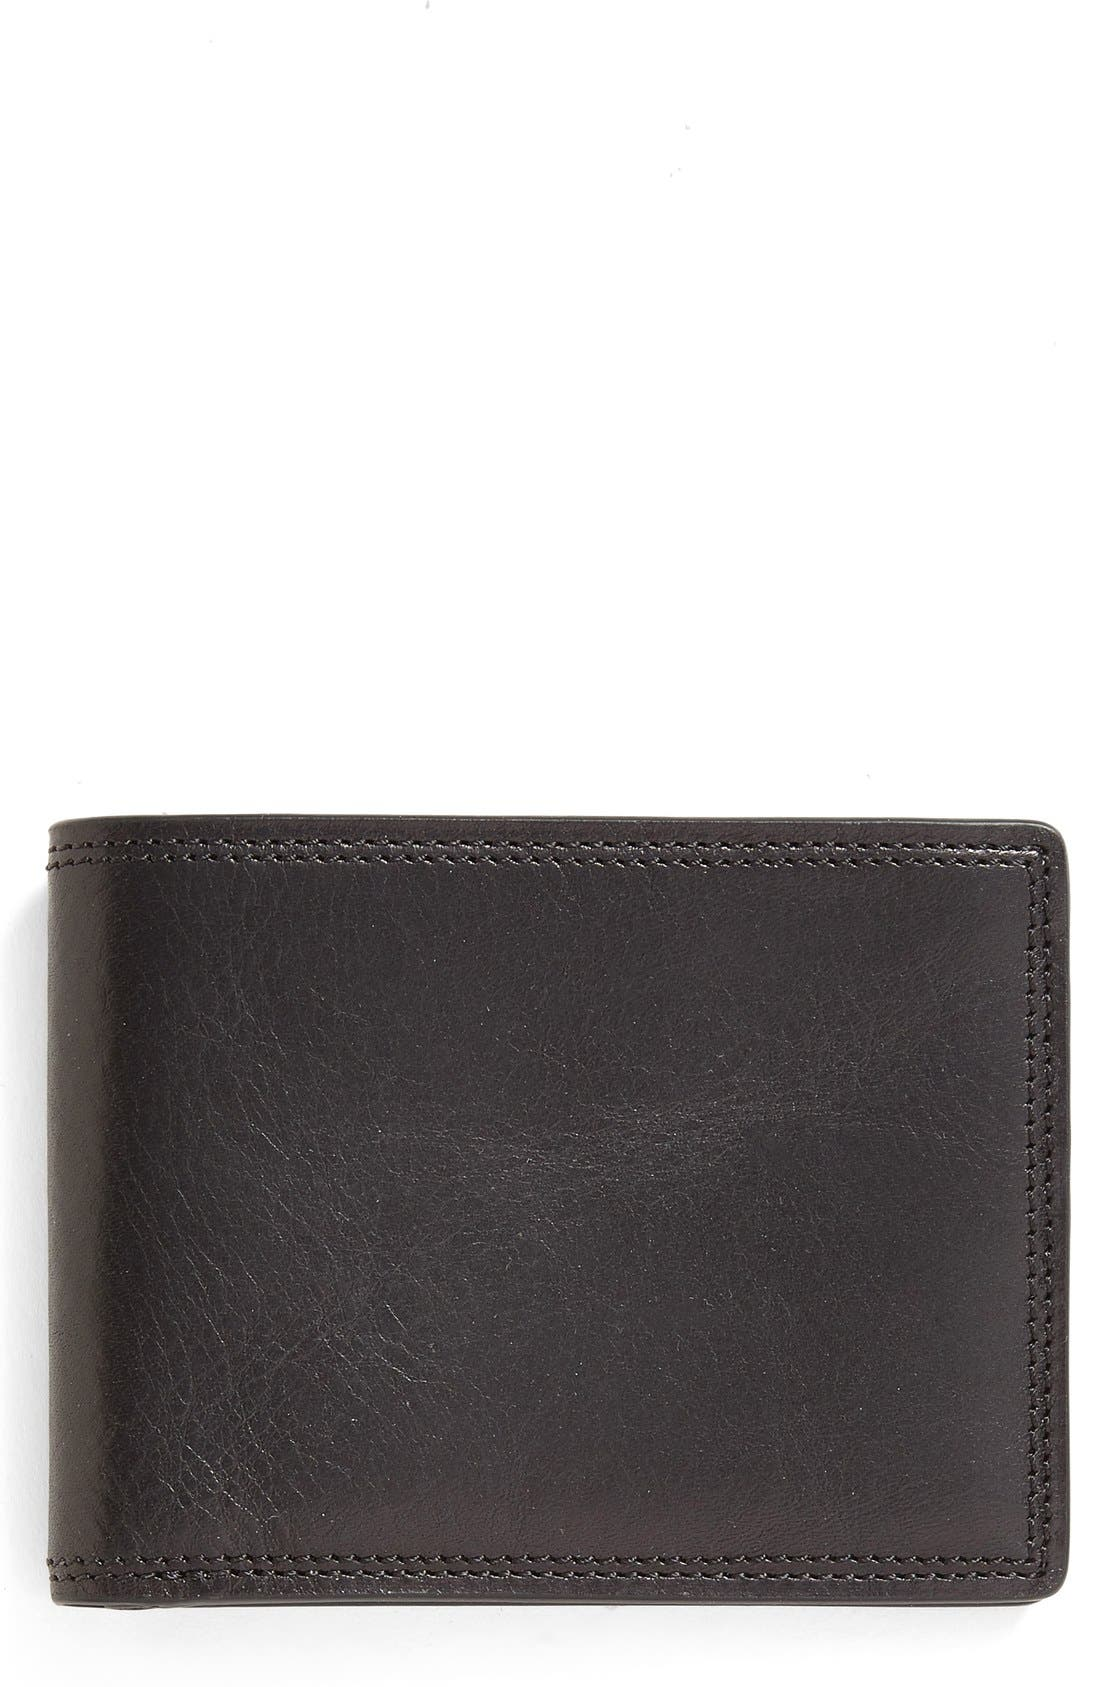 Leather Bifold Wallet,                             Main thumbnail 1, color,                             001